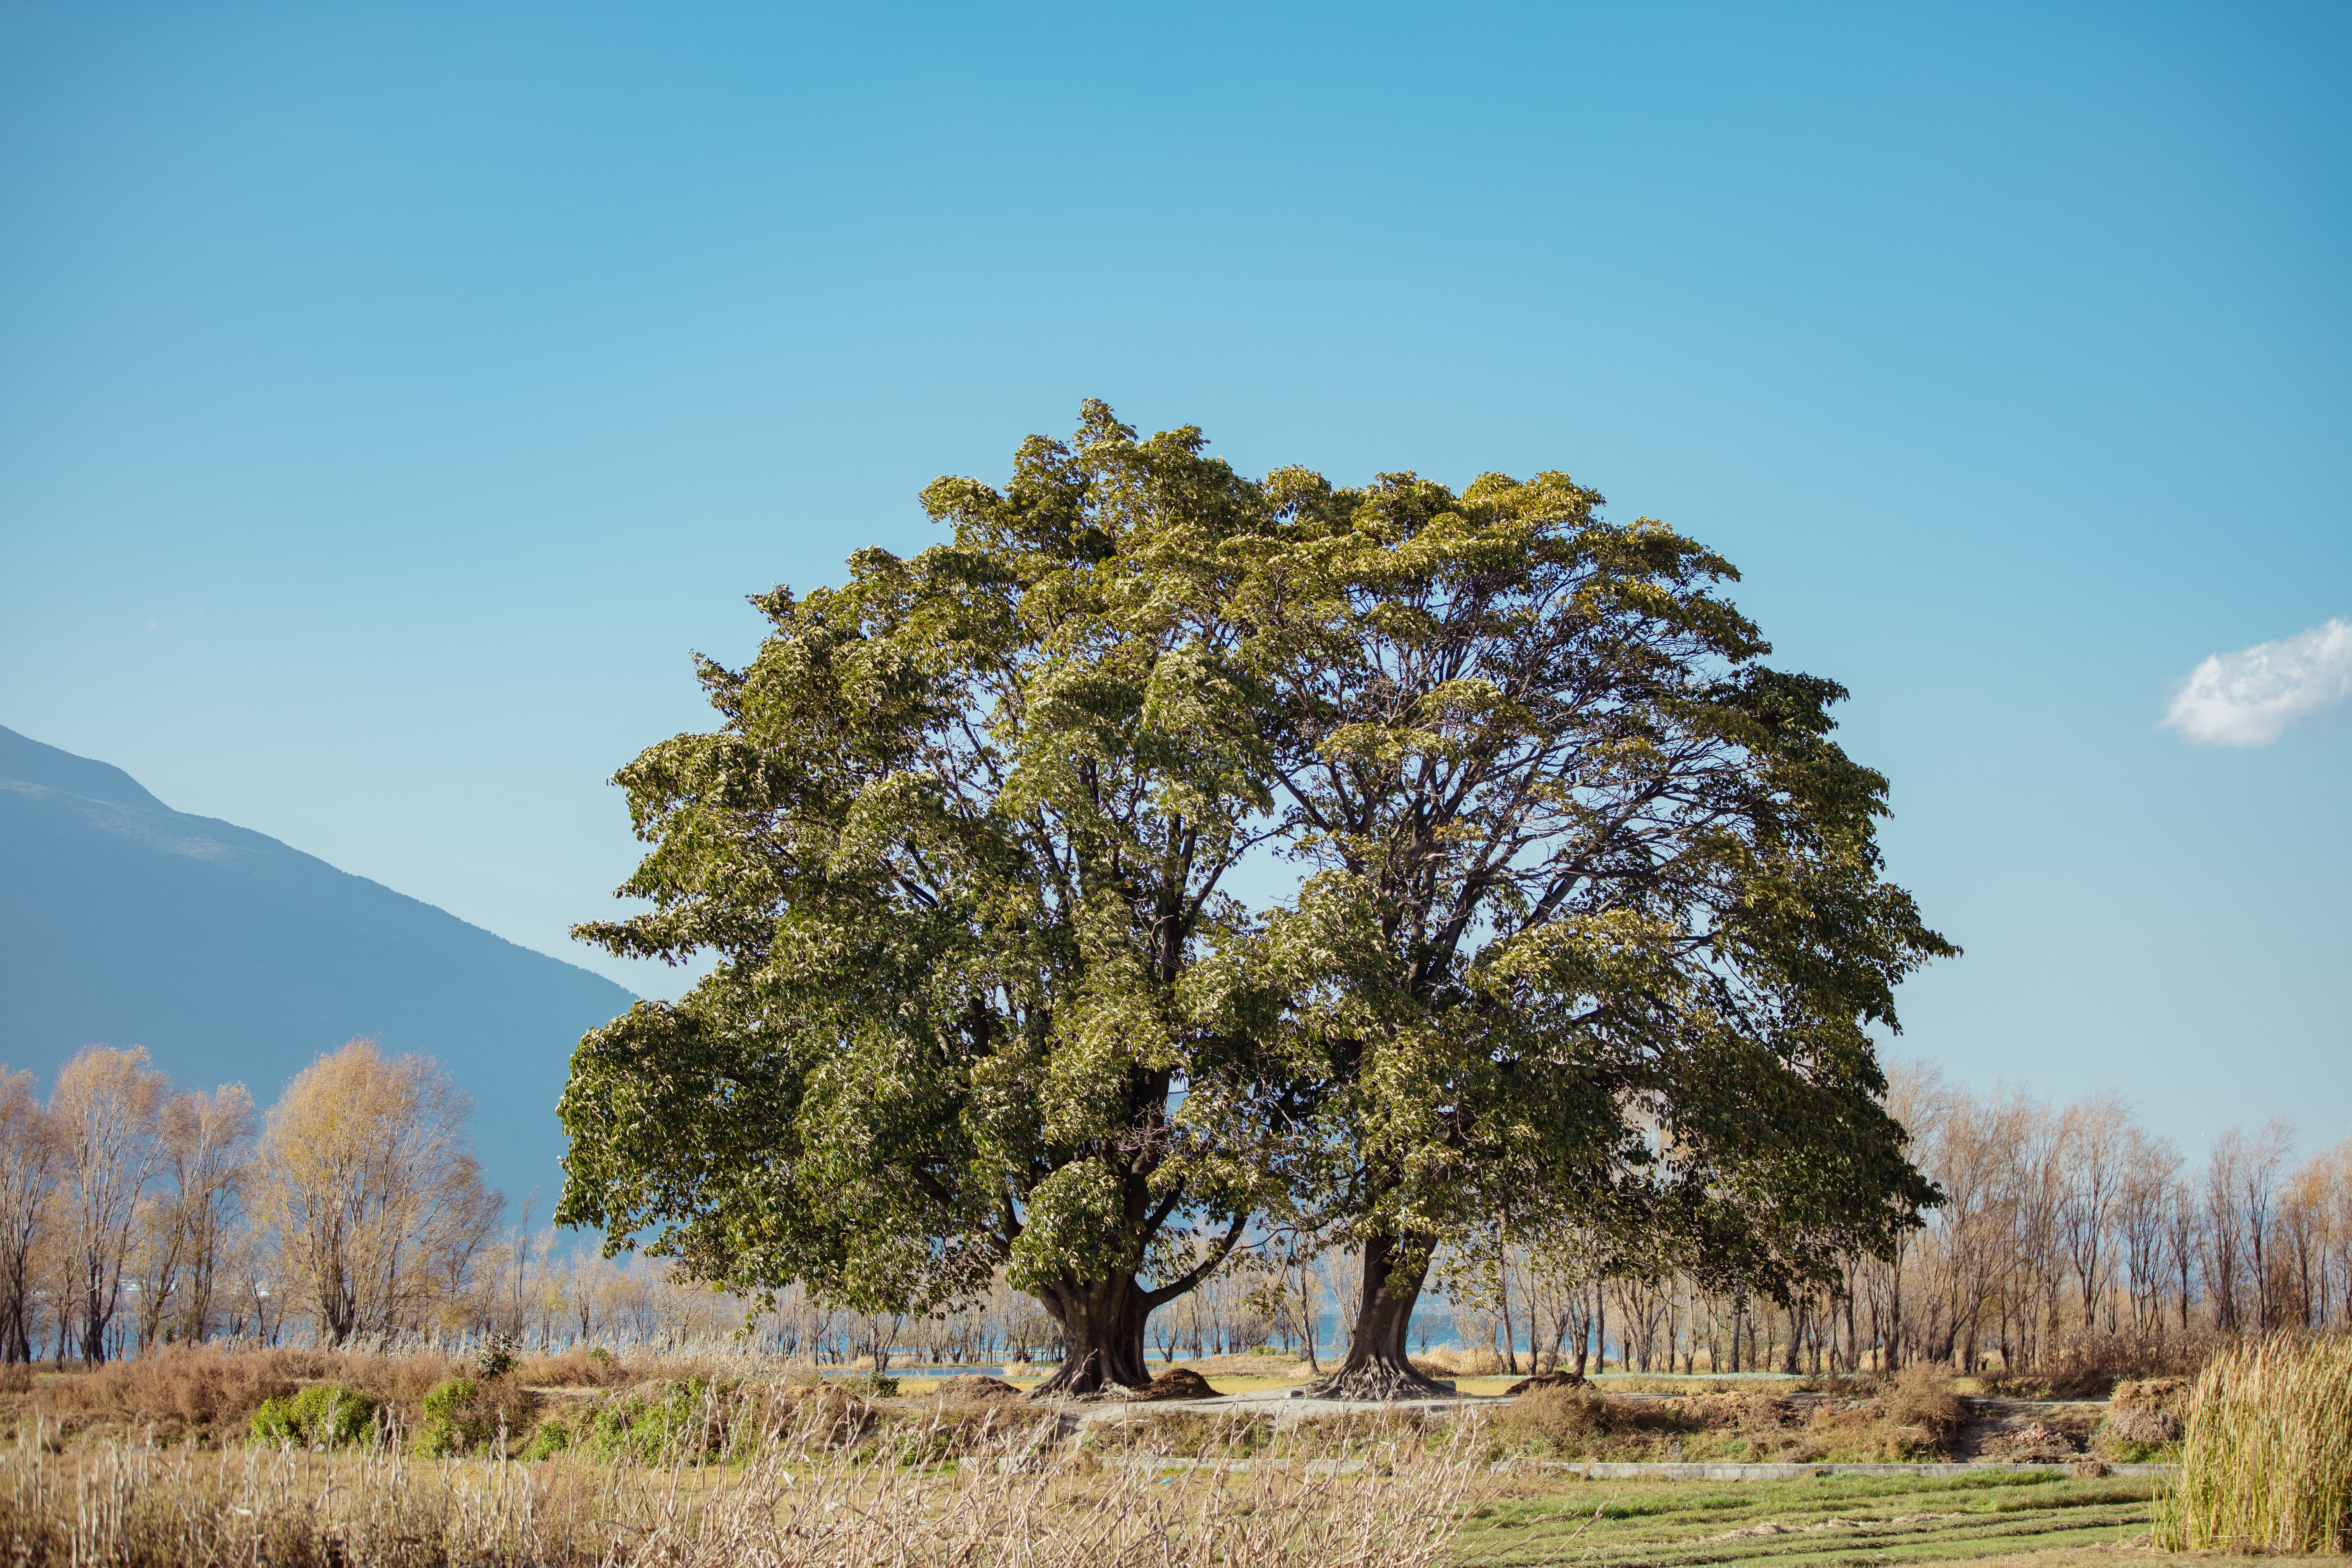 Green Leaf Trees in a Distant of Mountain Under Clear Blue Sky